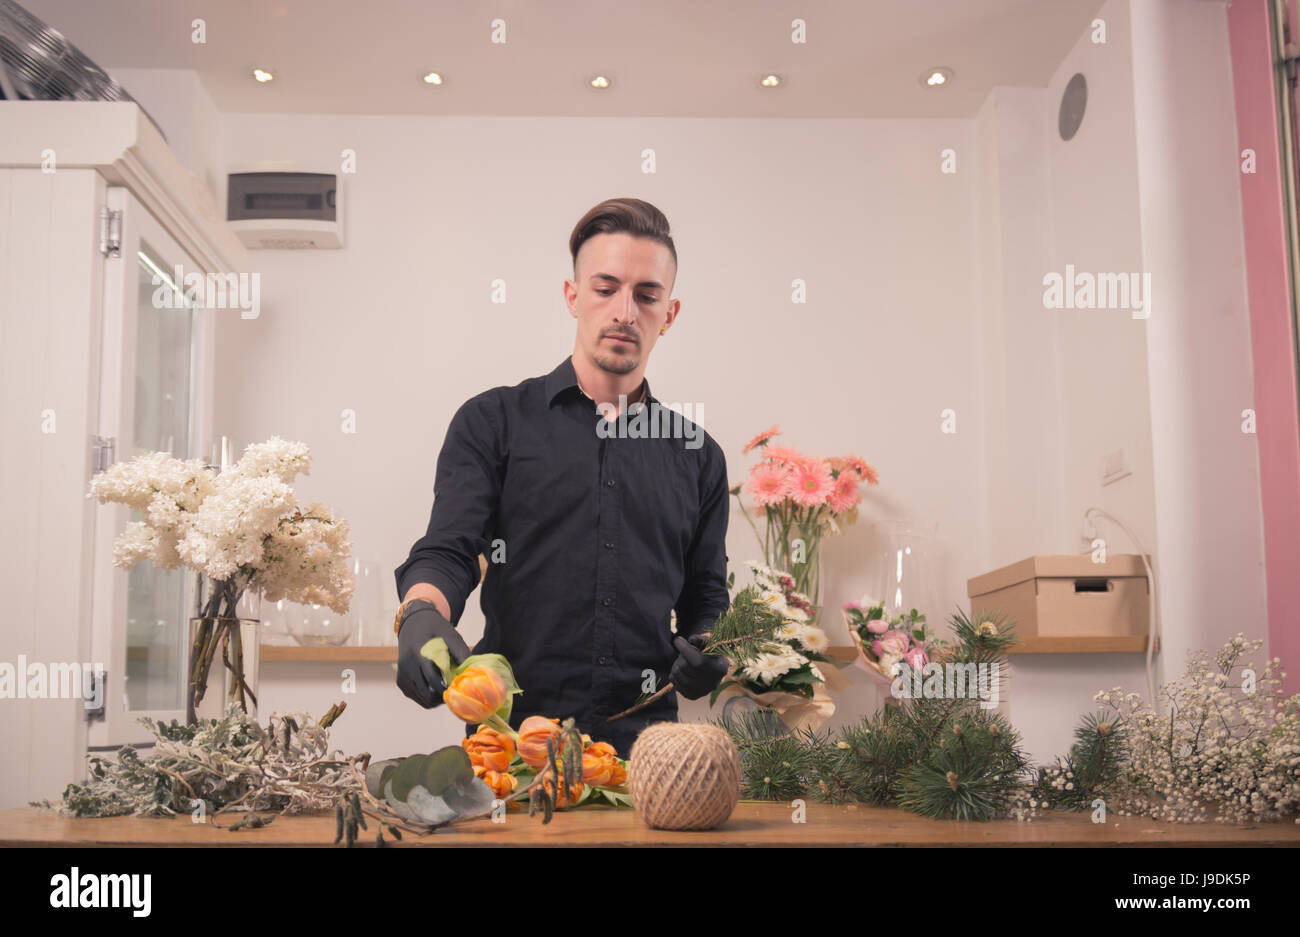 one young adult man, florist, picking choosing arranging flowers, flower shop indoors - Stock Image